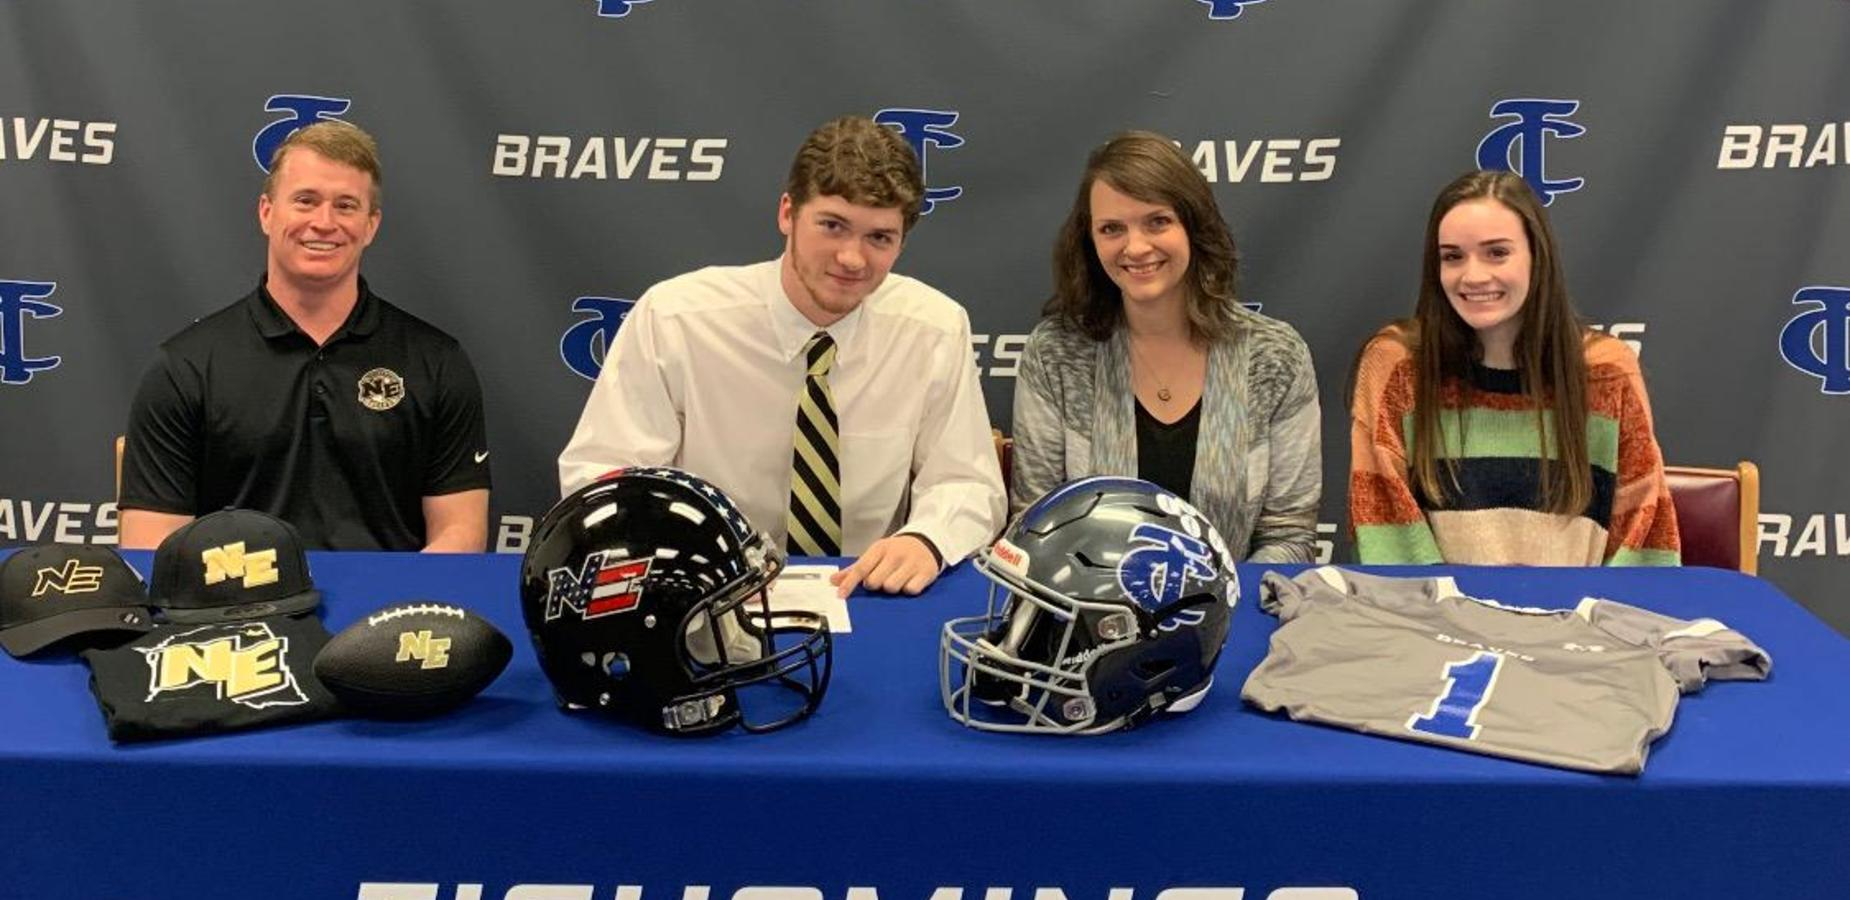 TCHS Senior Signs with NEMCC